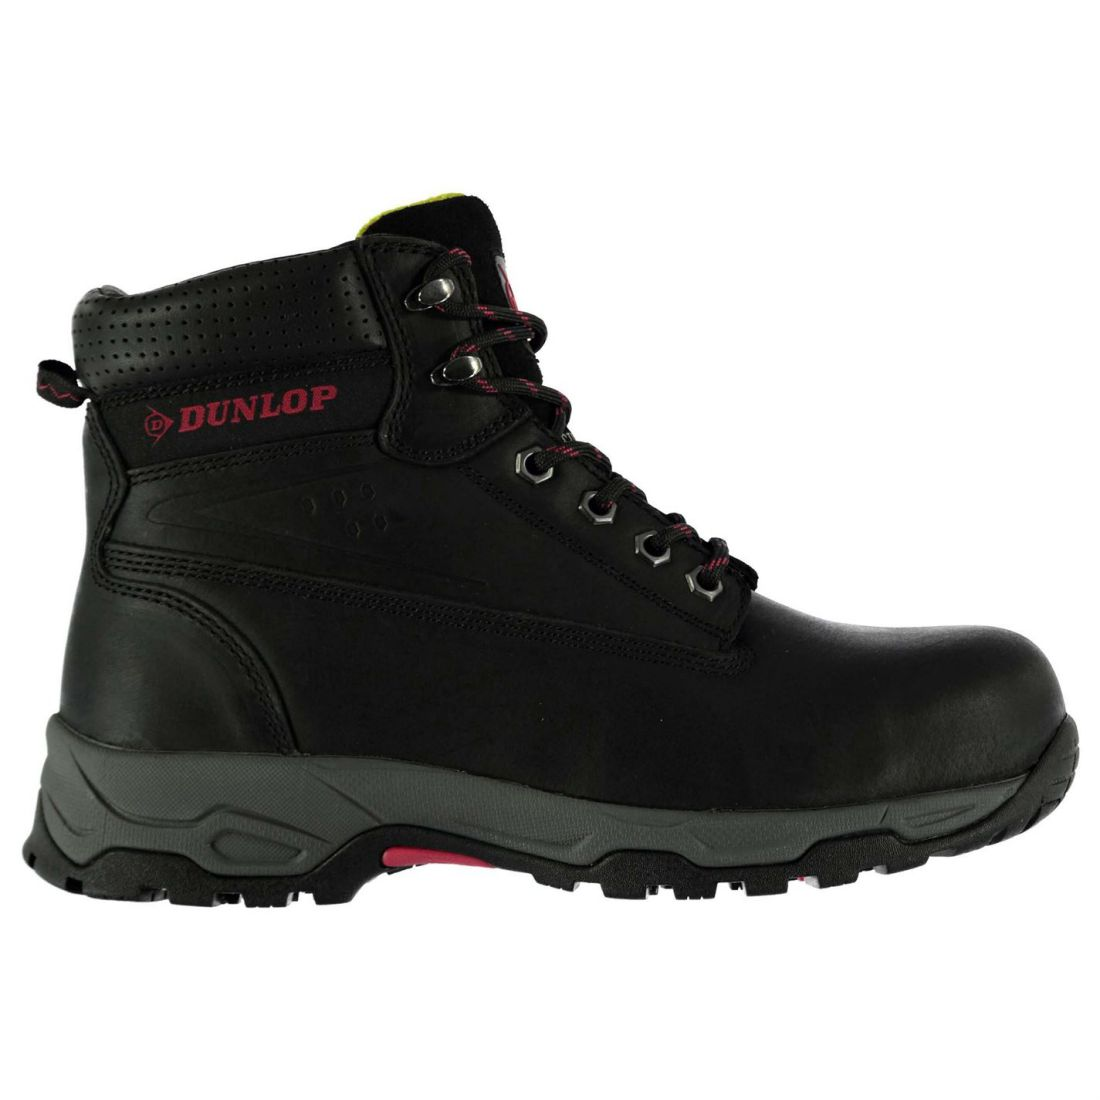 Dunlop Womens On Site Safety Boots Lace Up Work shoes Steel Toe Cap Leather